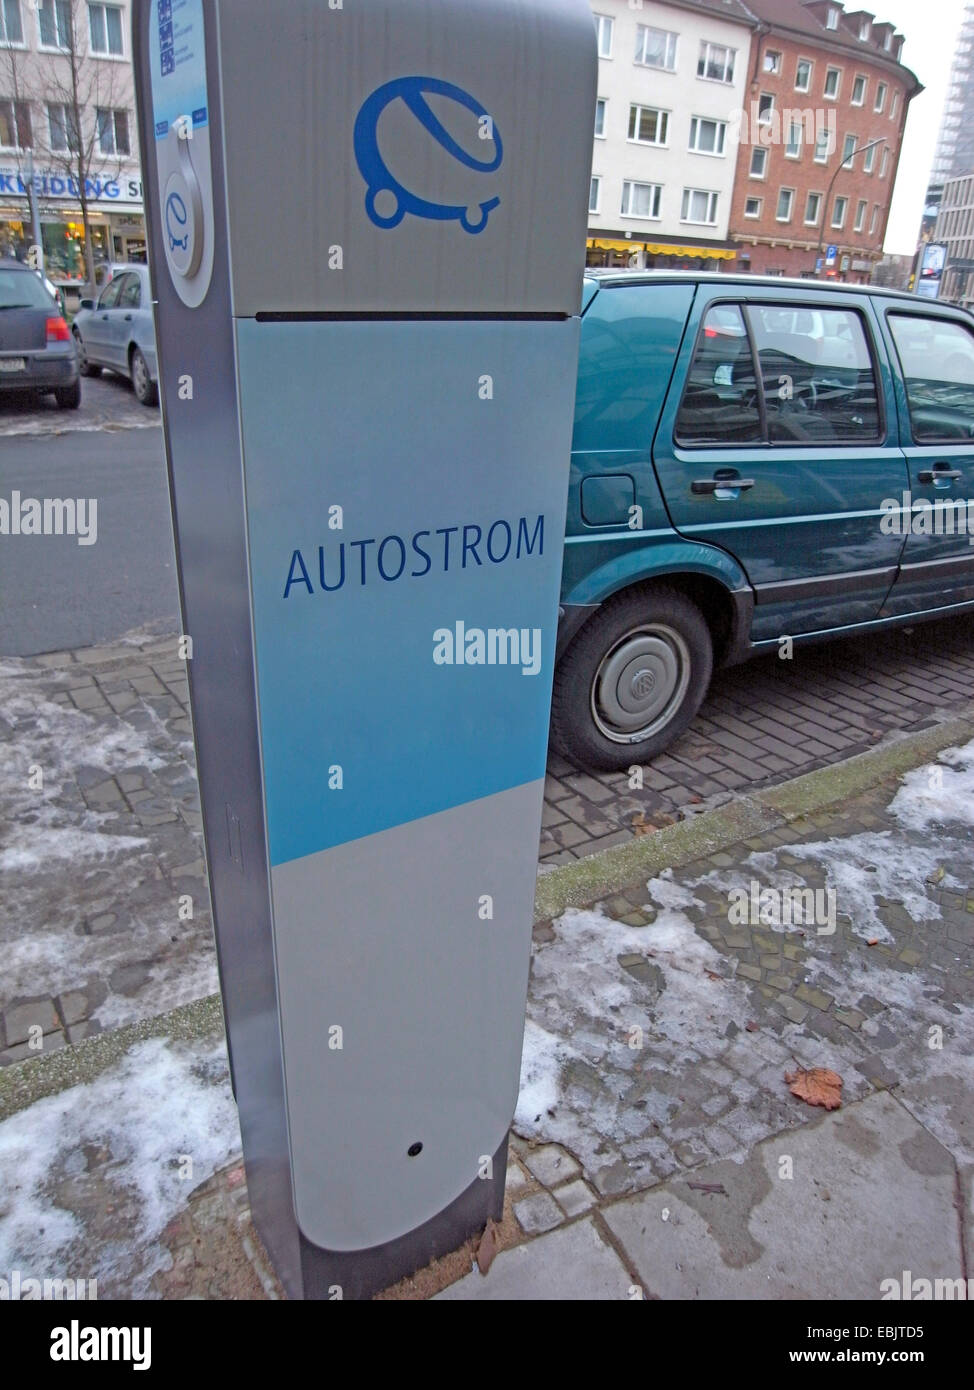 recharge station for electric cars, Germany, Ruhr Area - Stock Image